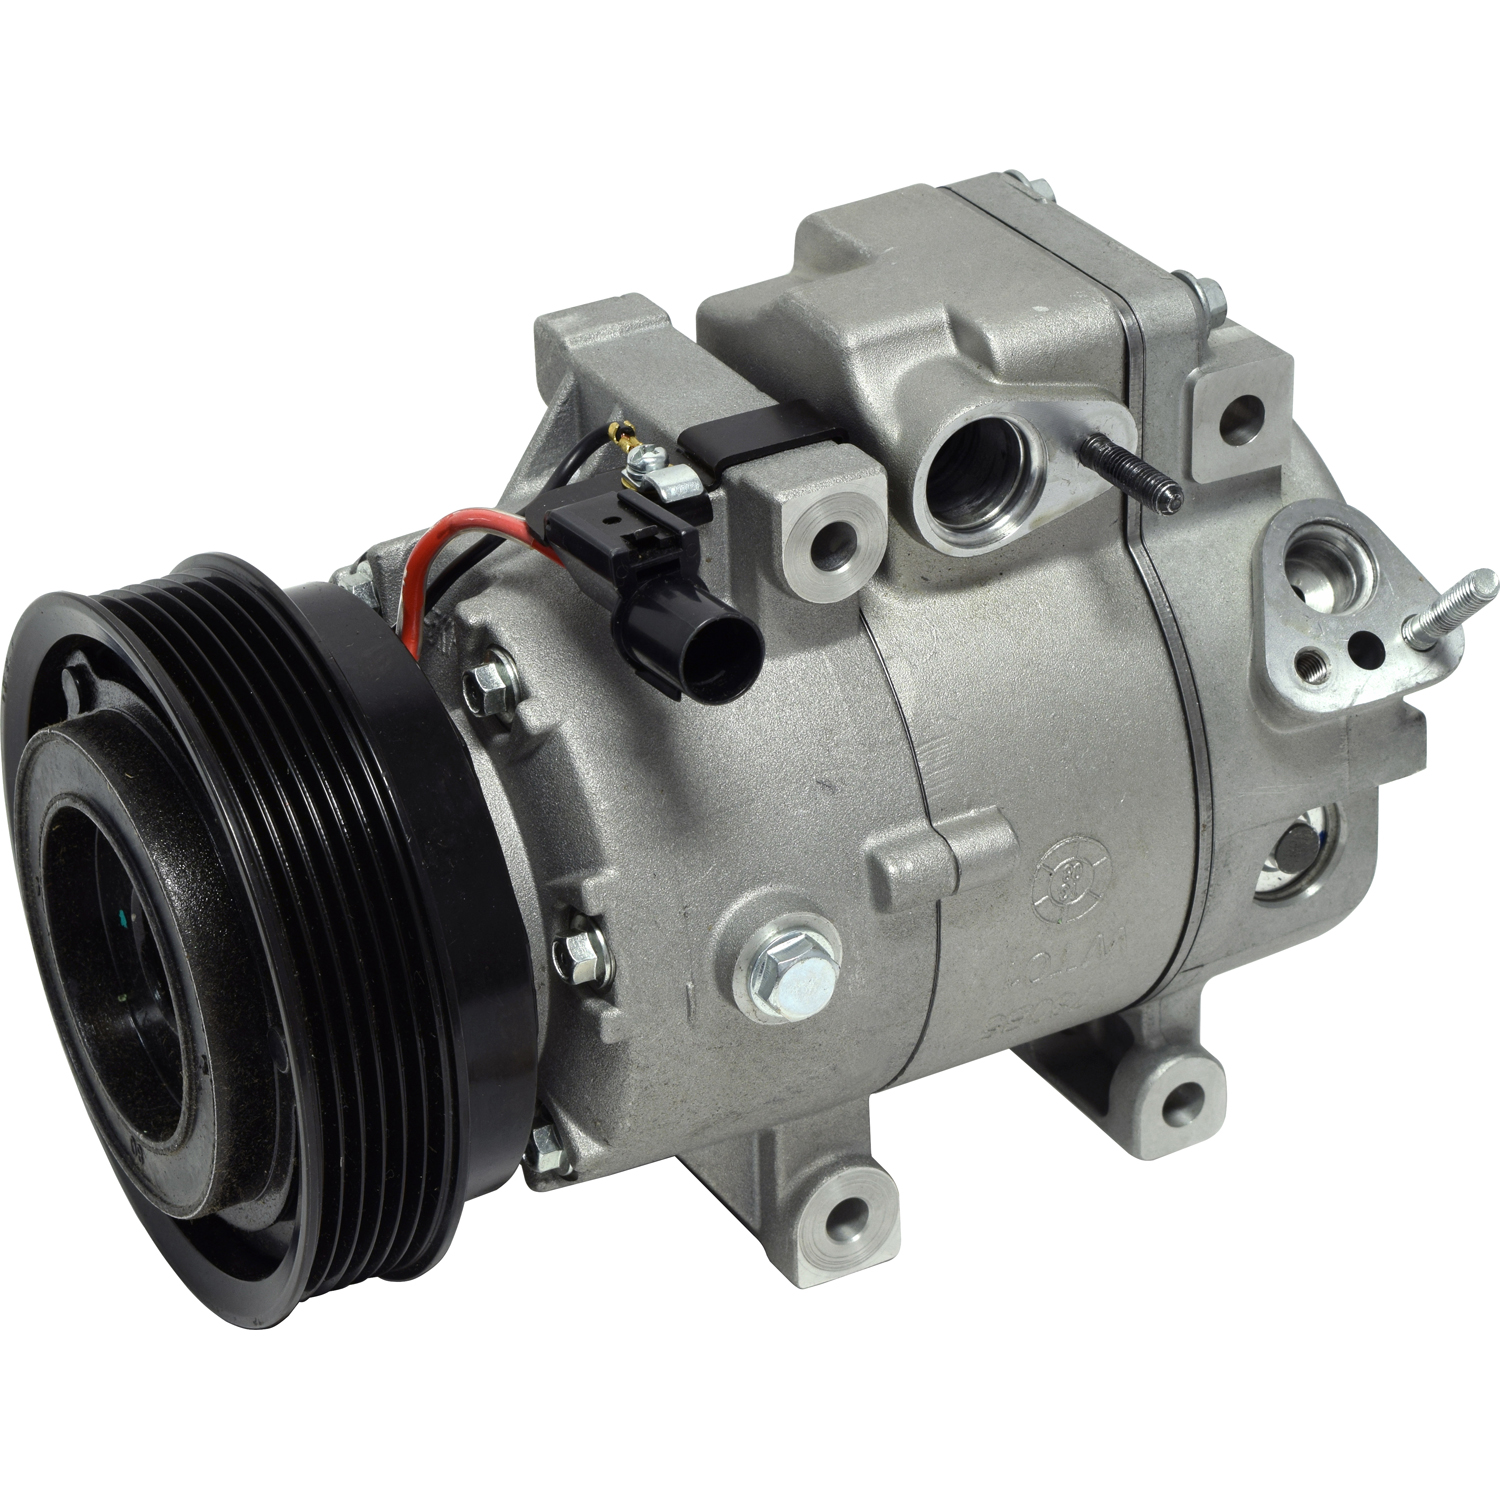 CO 10916C VS18 Compressor Assembly